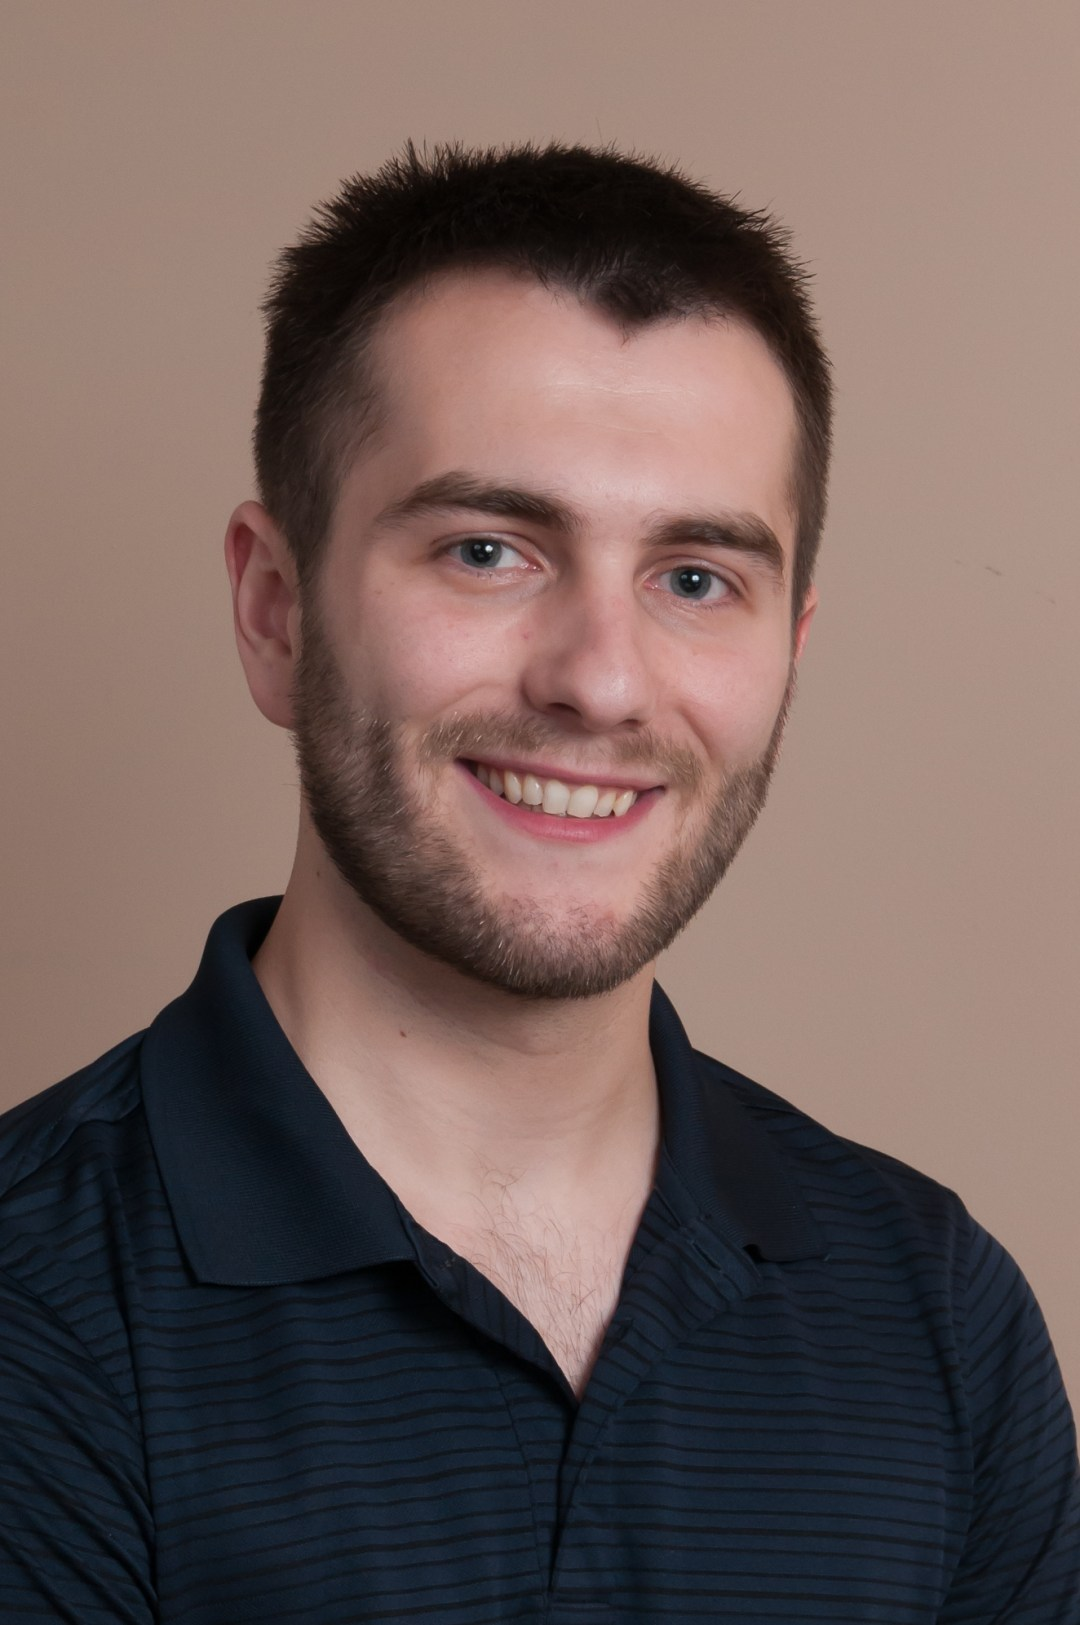 Peter Castellani, Licensed Massage Therapist at Simsbury Therapeutic Massage & Wellness